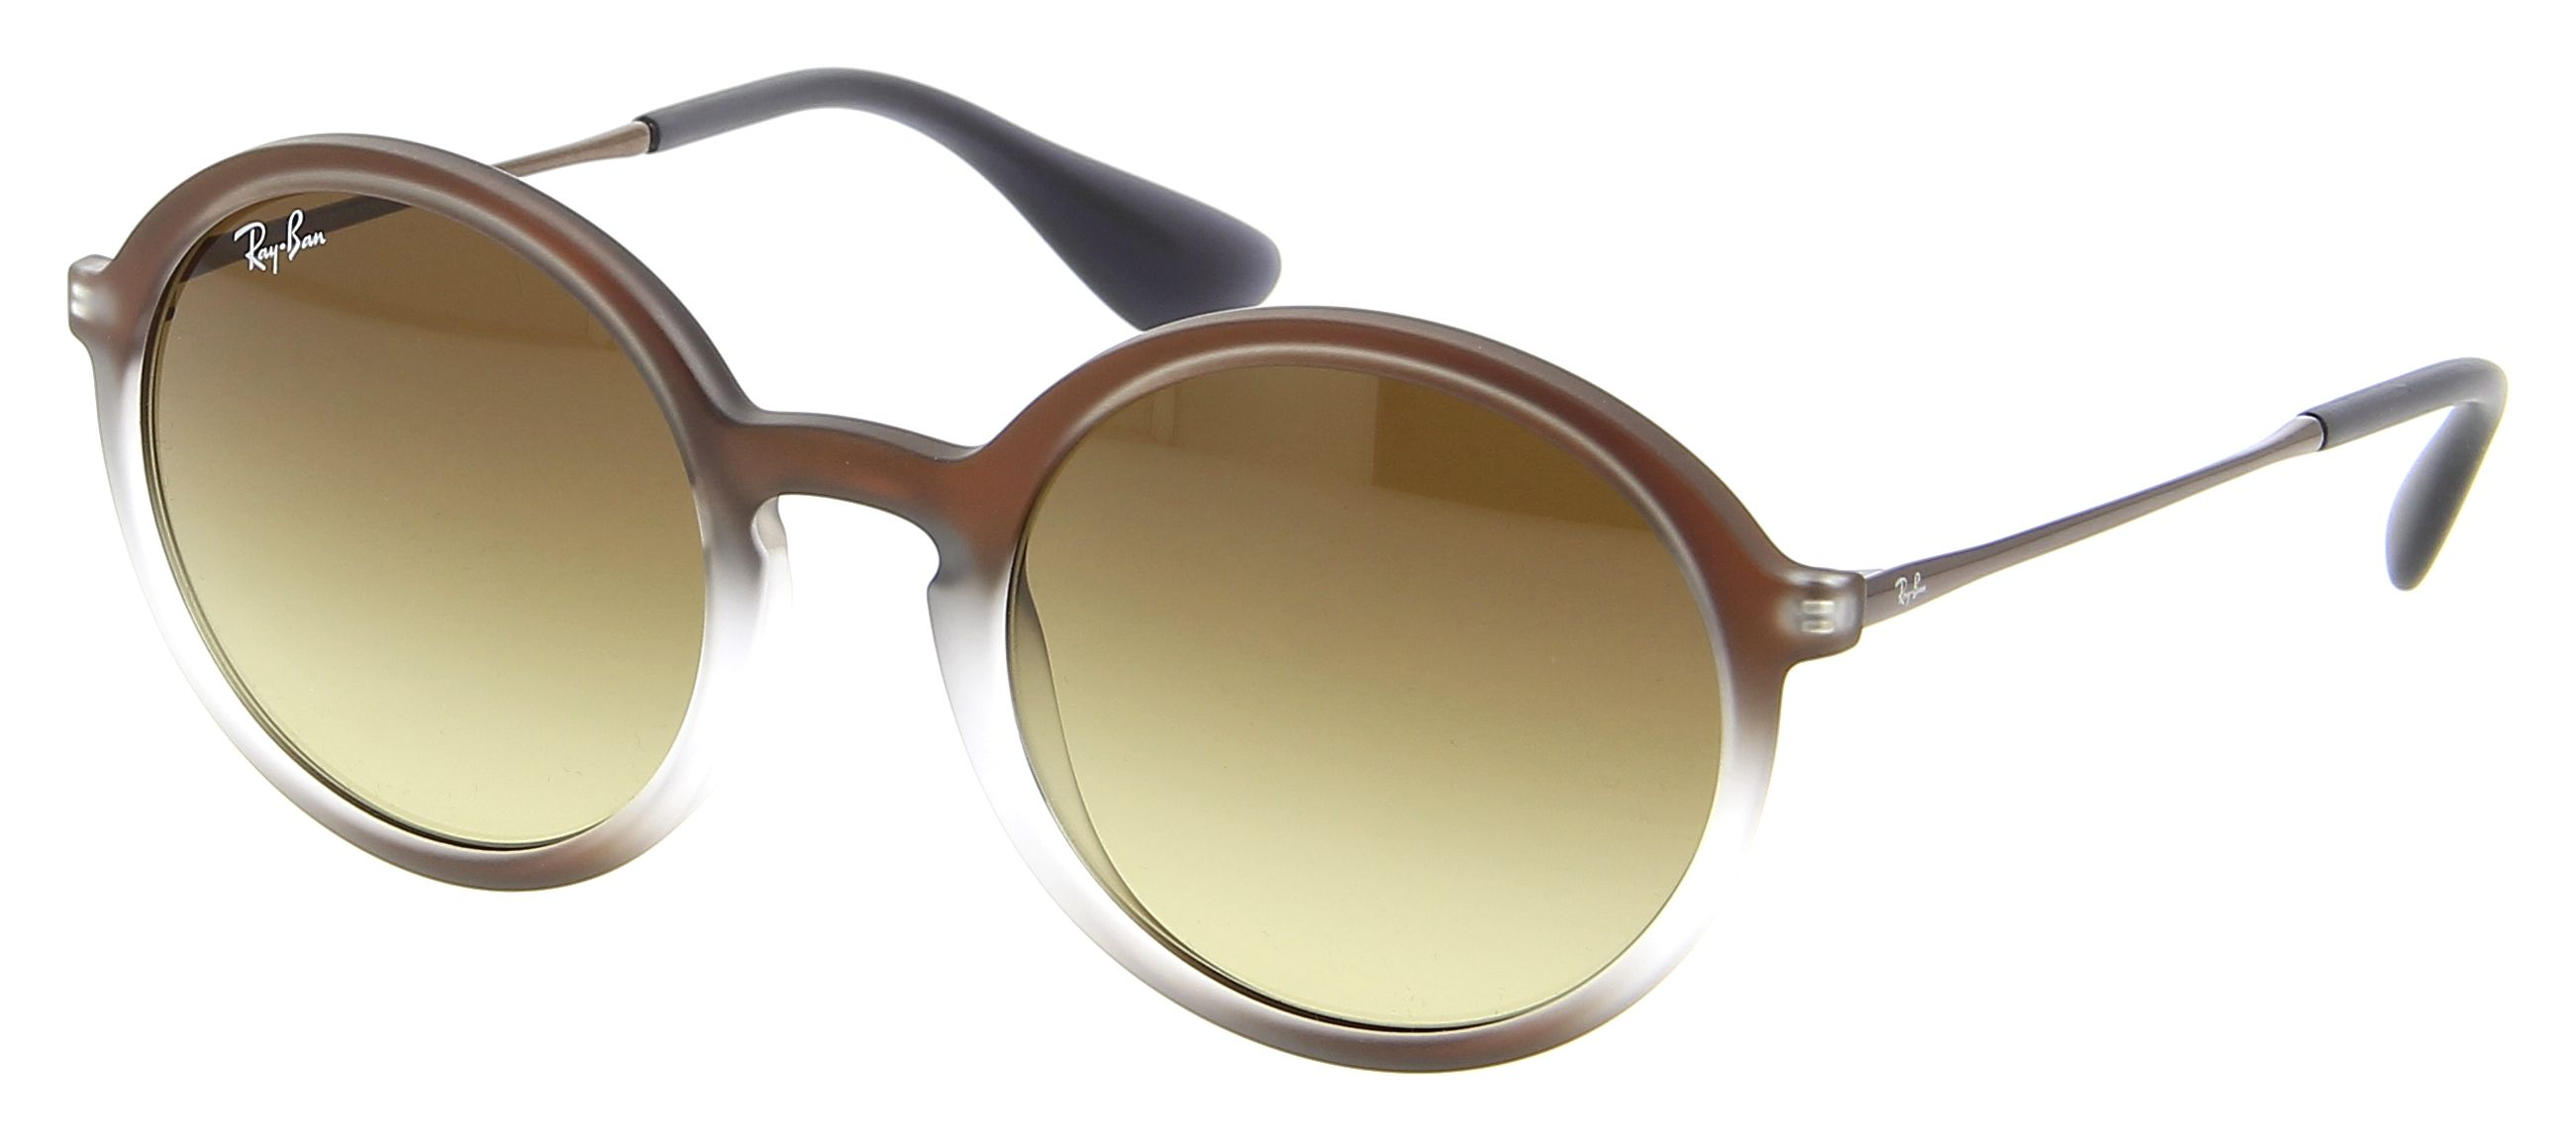 771303ead56b1 Ray Ban Solaire Femme 2013 « One More Soul